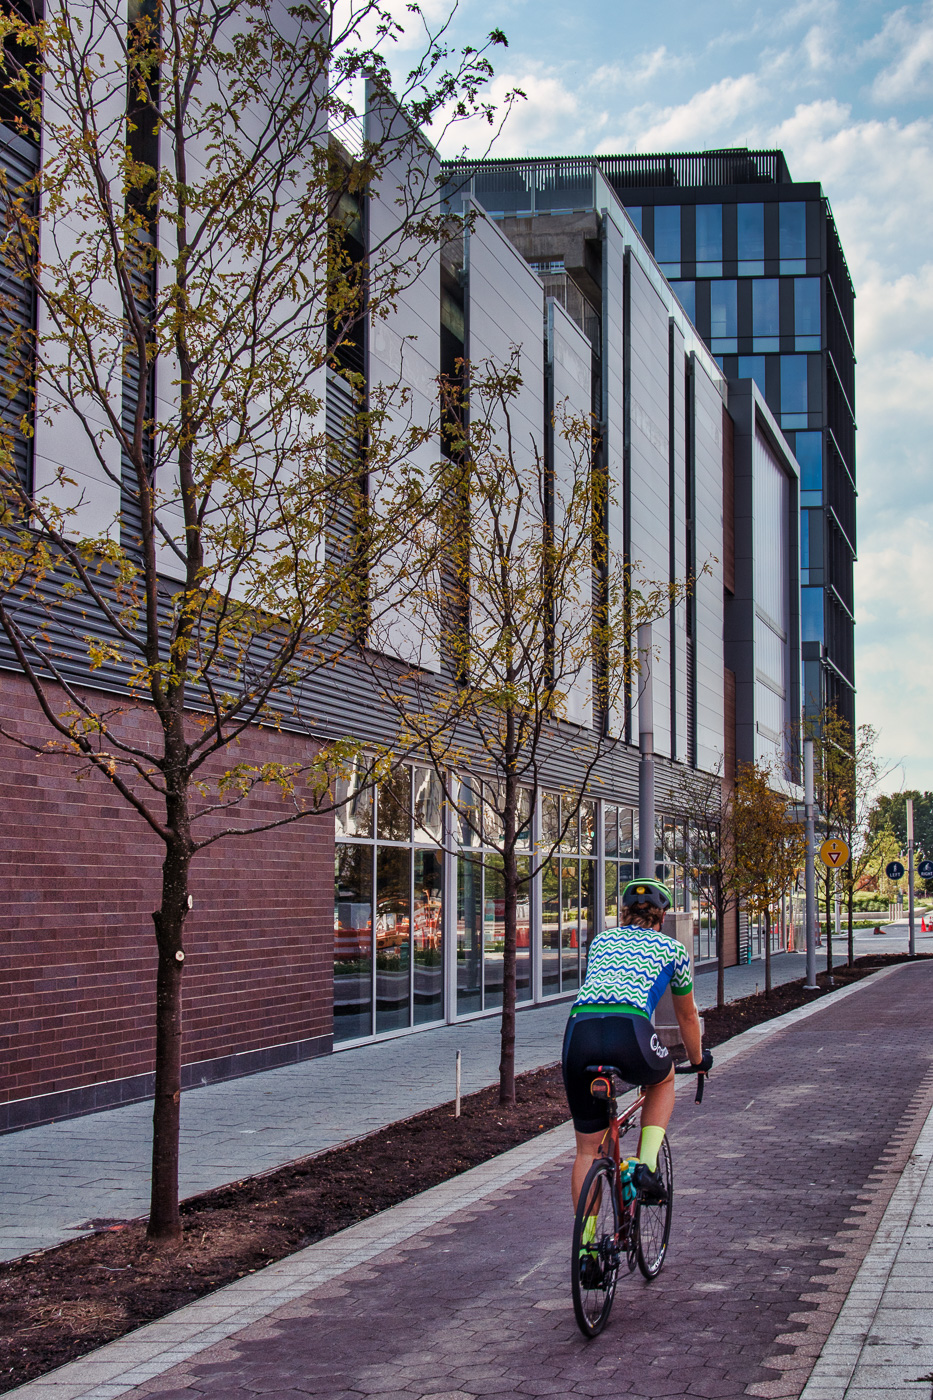 A section of the Cultural Trail was closed due to the construction of the building that will house Whole Foods. It is now reopened! Click the cyclist to view a larger size photo.